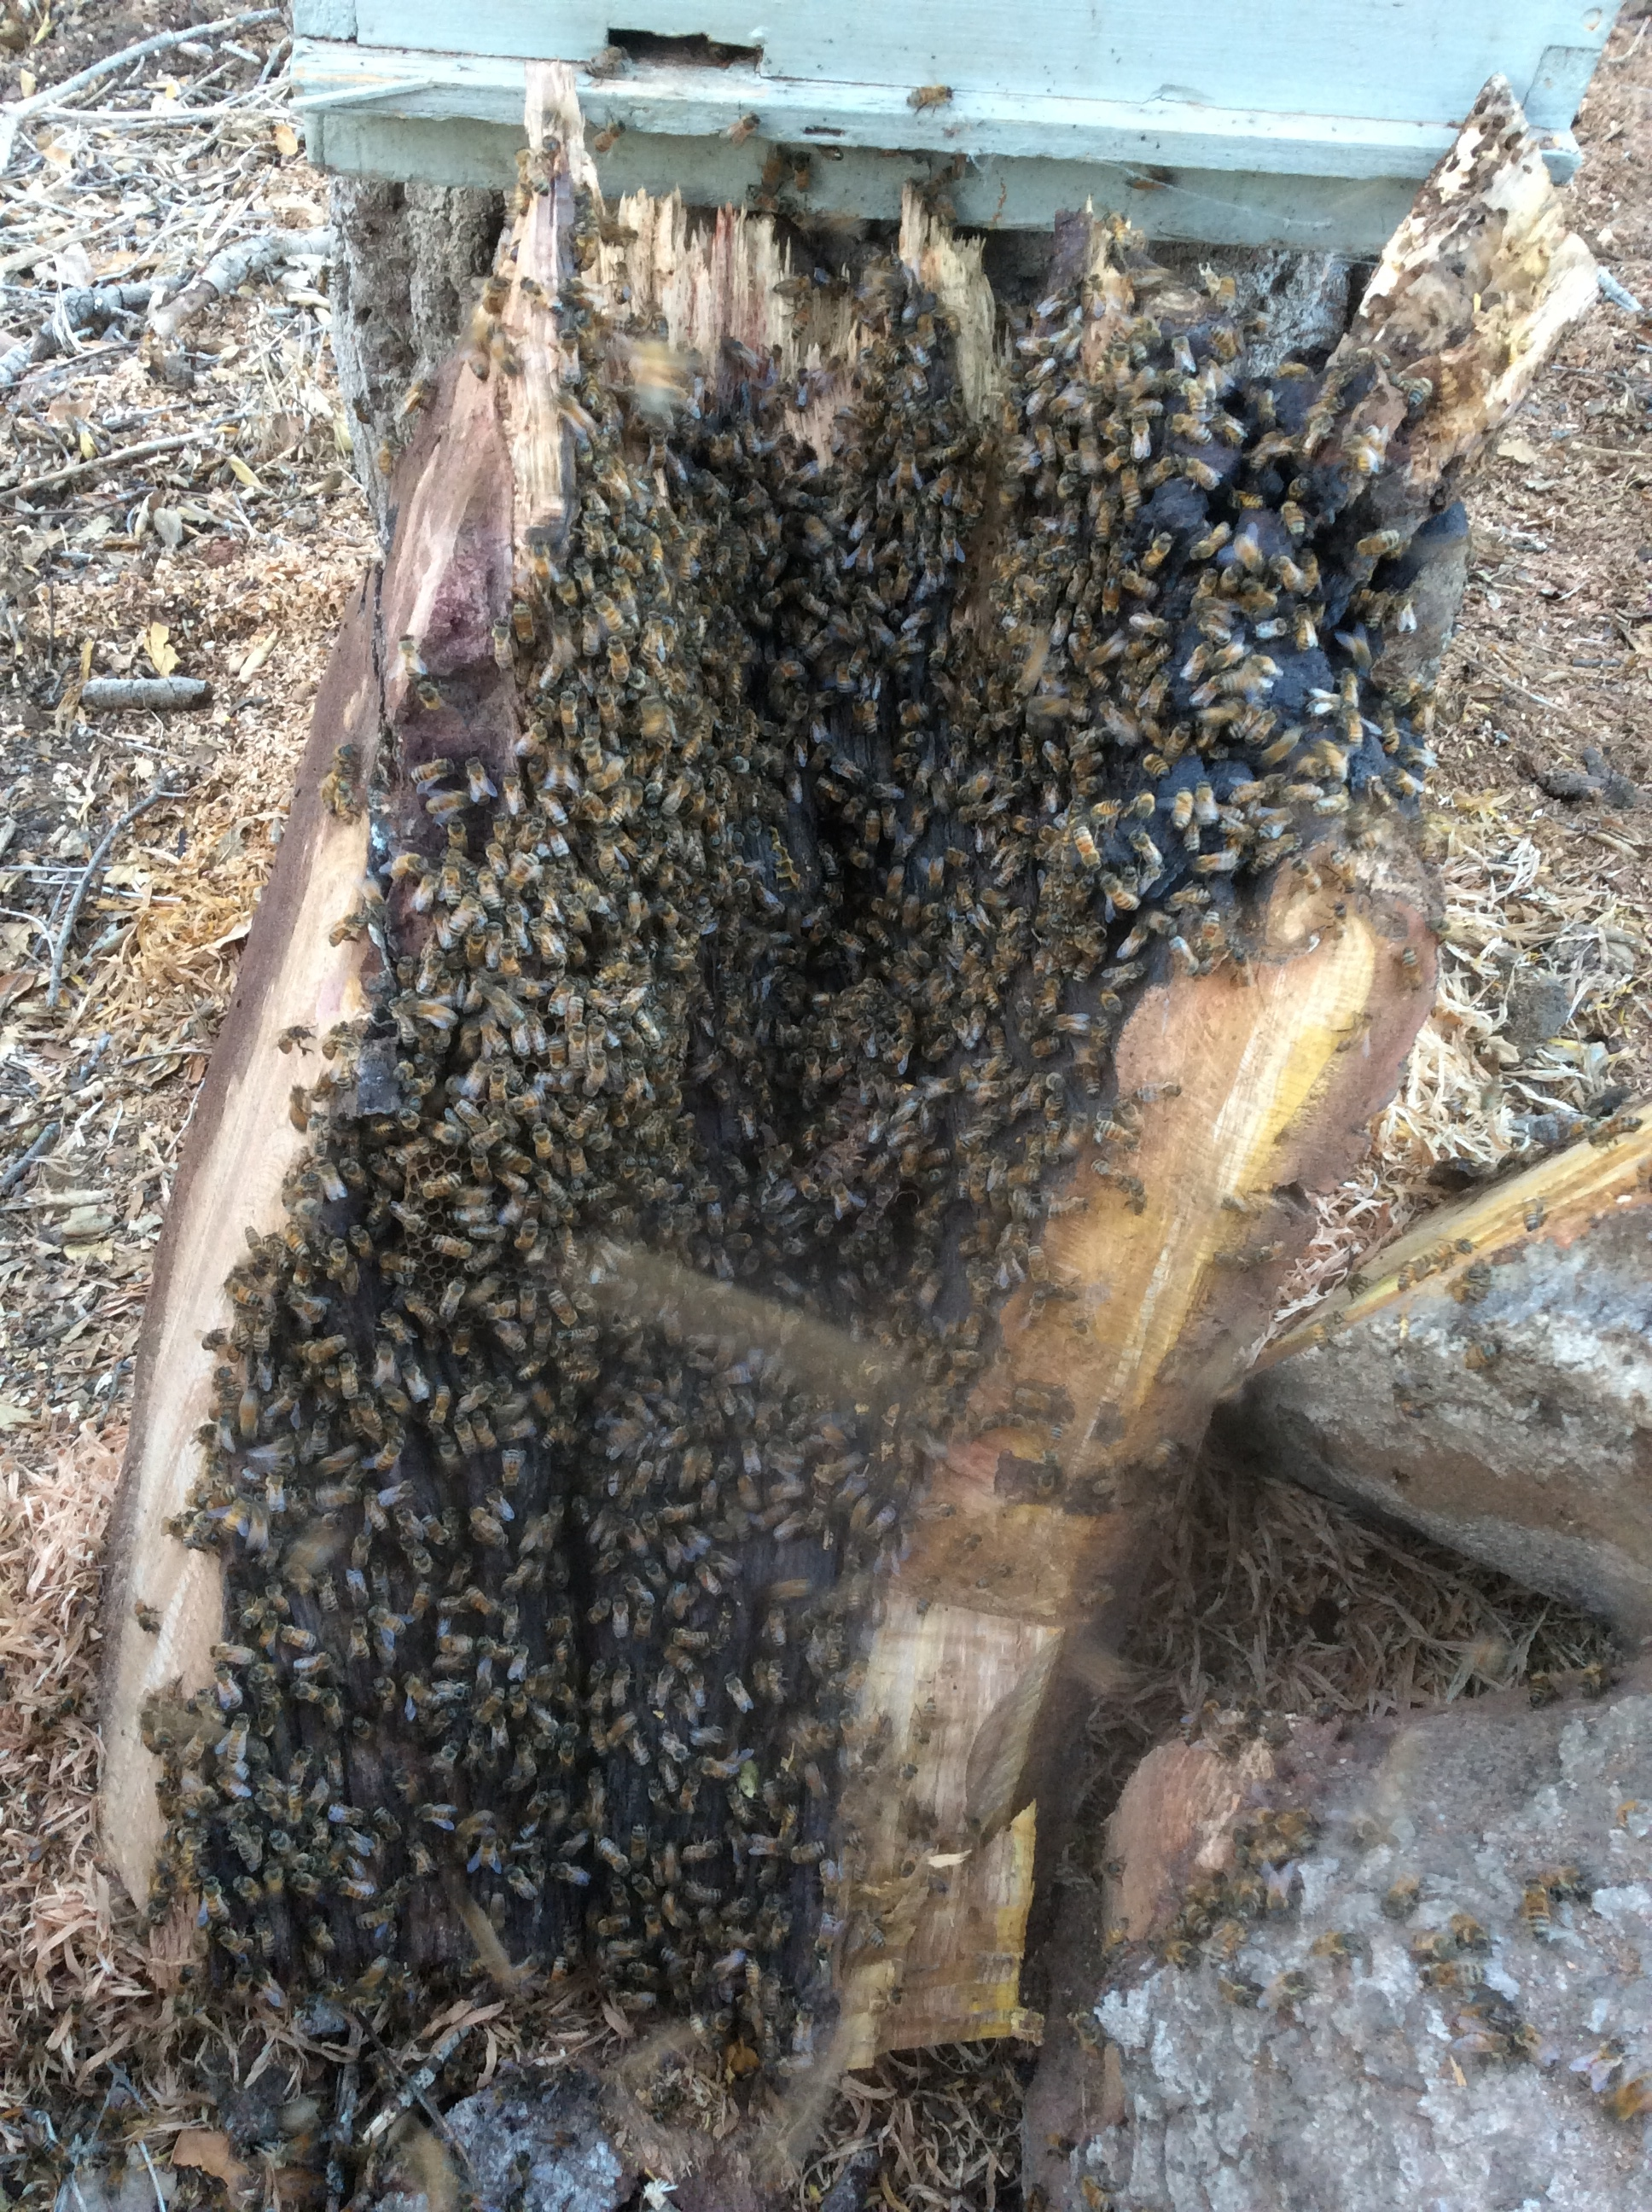 Bees in a log hive